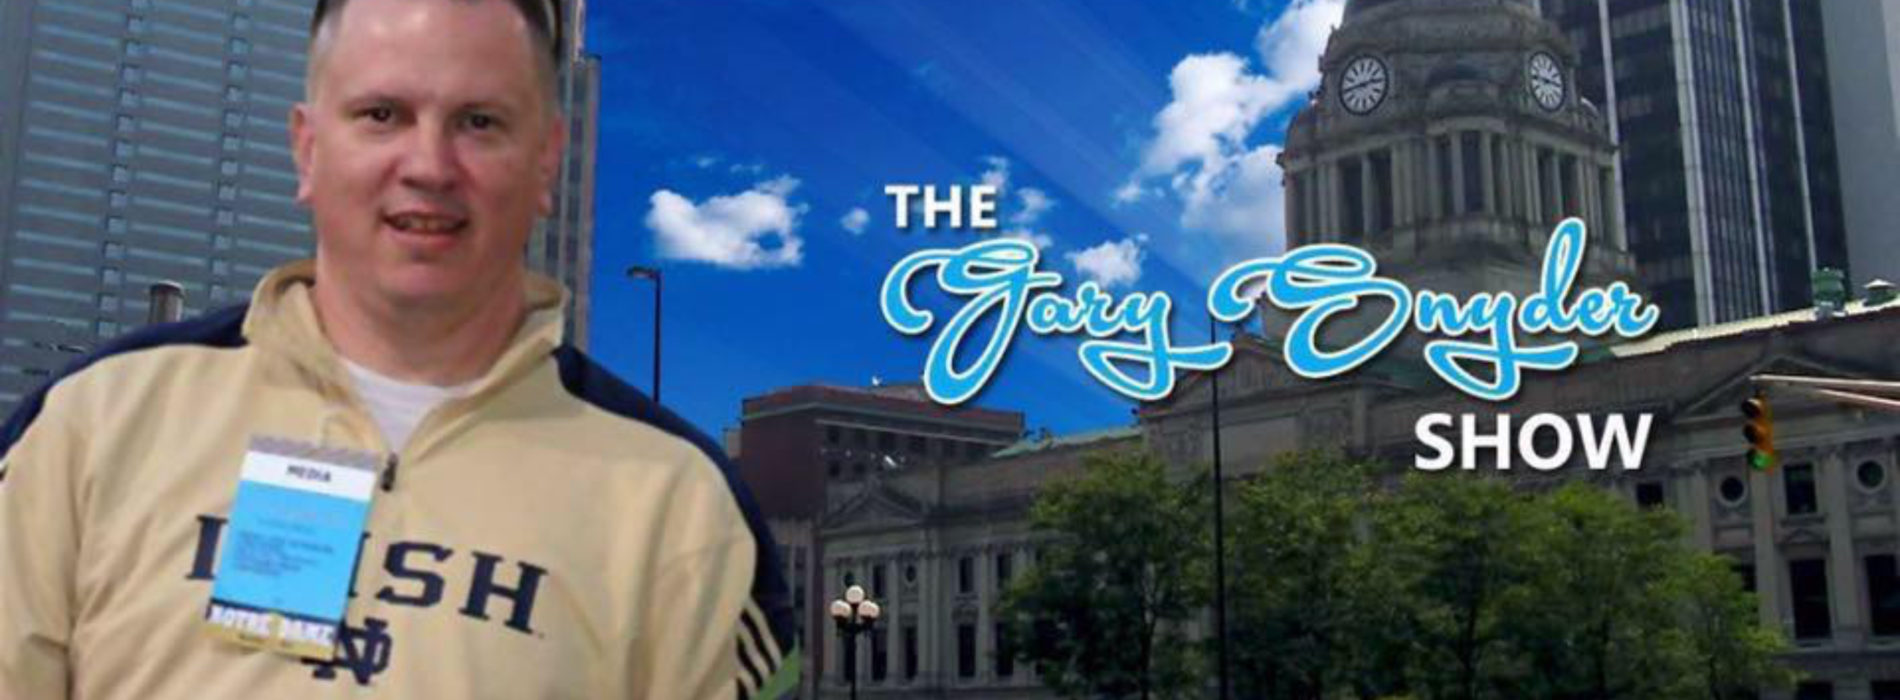 The Gary Snyder Show talks public education with Justin Oakley